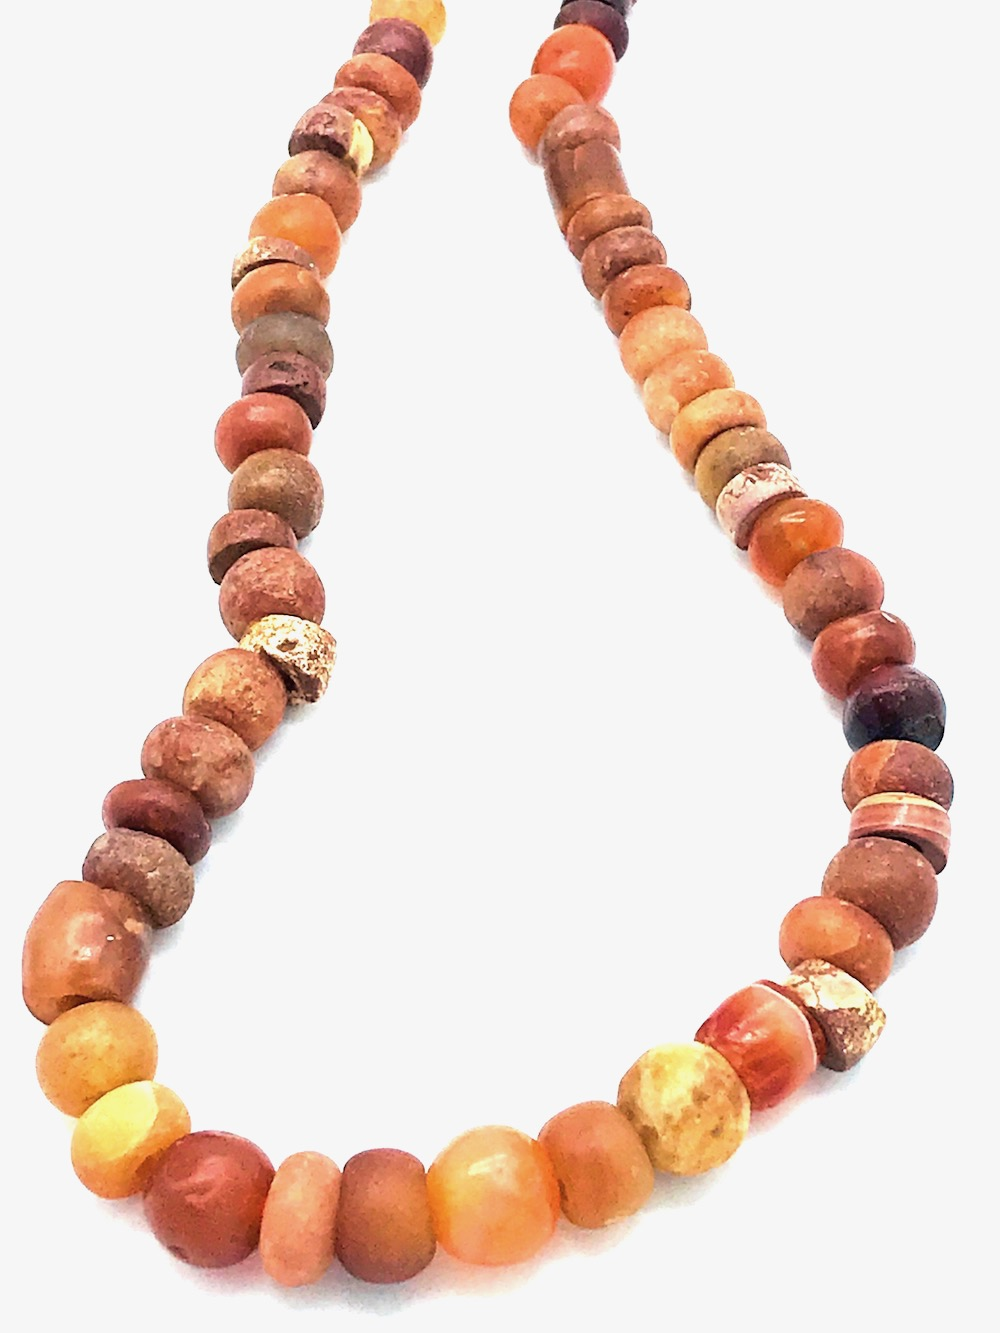 Lot 8624: Mali, West African Tribal, Hand-Painted Calcite Bead Necklace